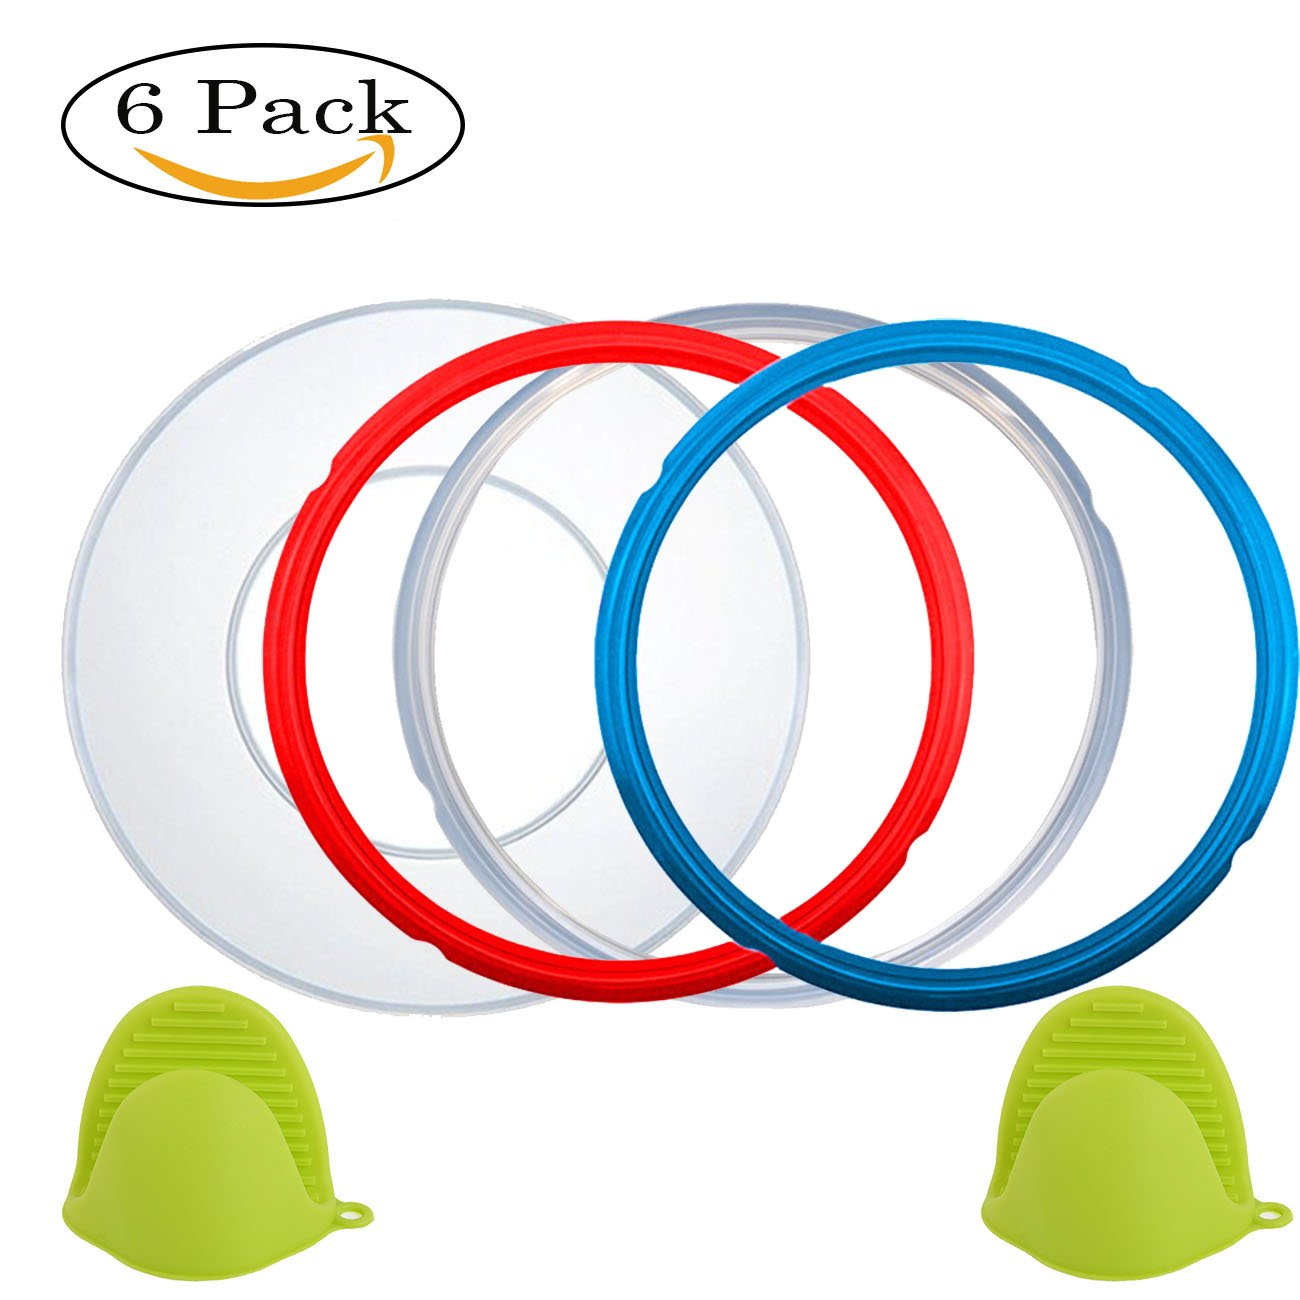 Instant Pot Accessories Silicone Lid Cover 6 Quart + Silicone Sealing Ring gasket 5 or 6 quart + Free Silicone Oven Mitts, Sweet and Savoury,Common Clear Edition Ring Fit IP Models by Nice-Components